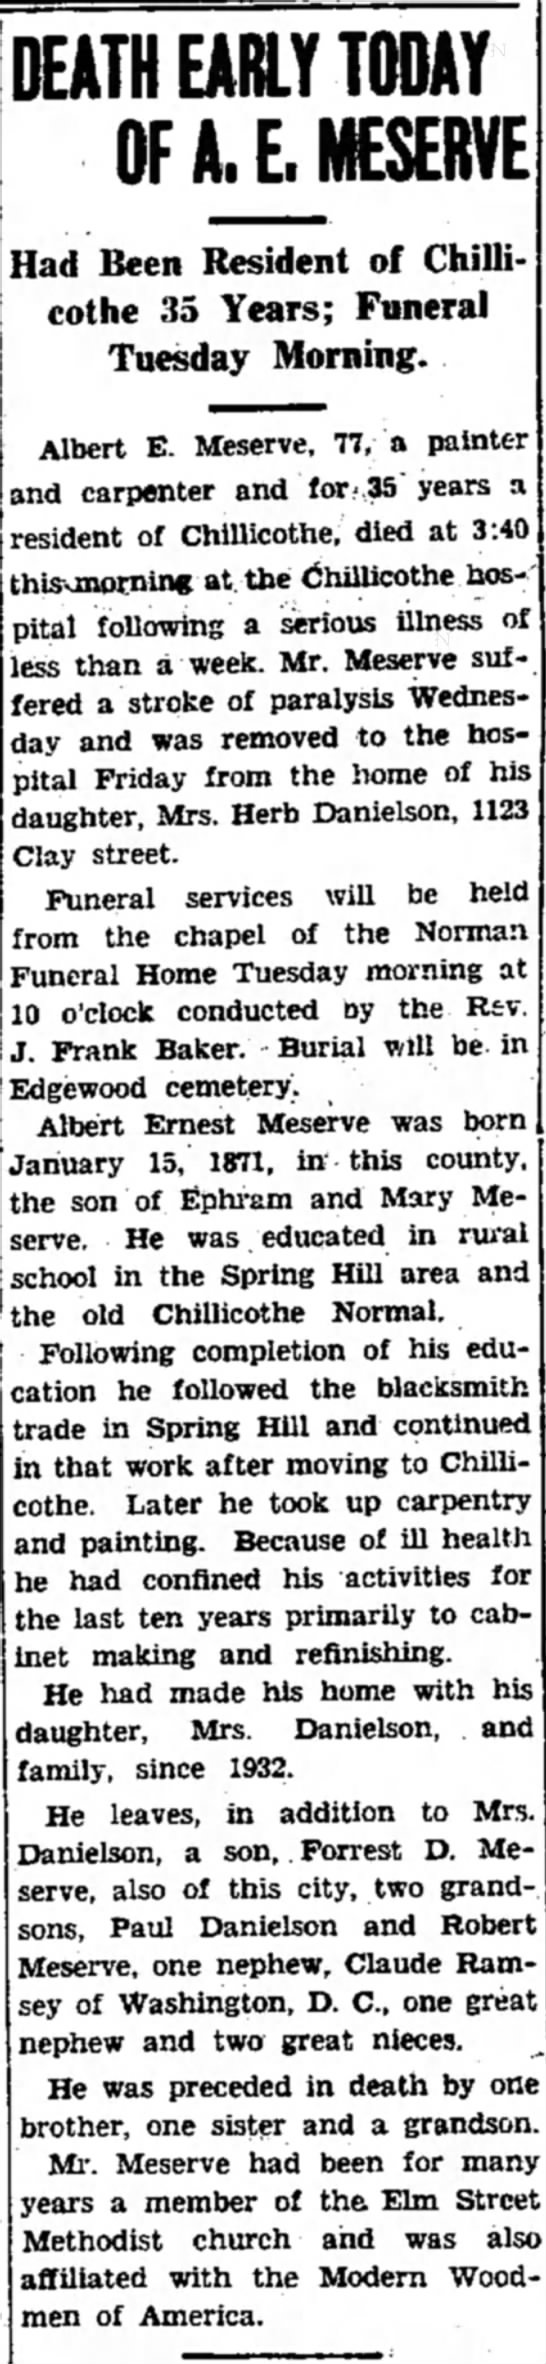 Albert Ernet Meserve - 1948 Obit Chillicothe MO - DEATH EARLY TODAY OF AJJKSERVE Had Been...